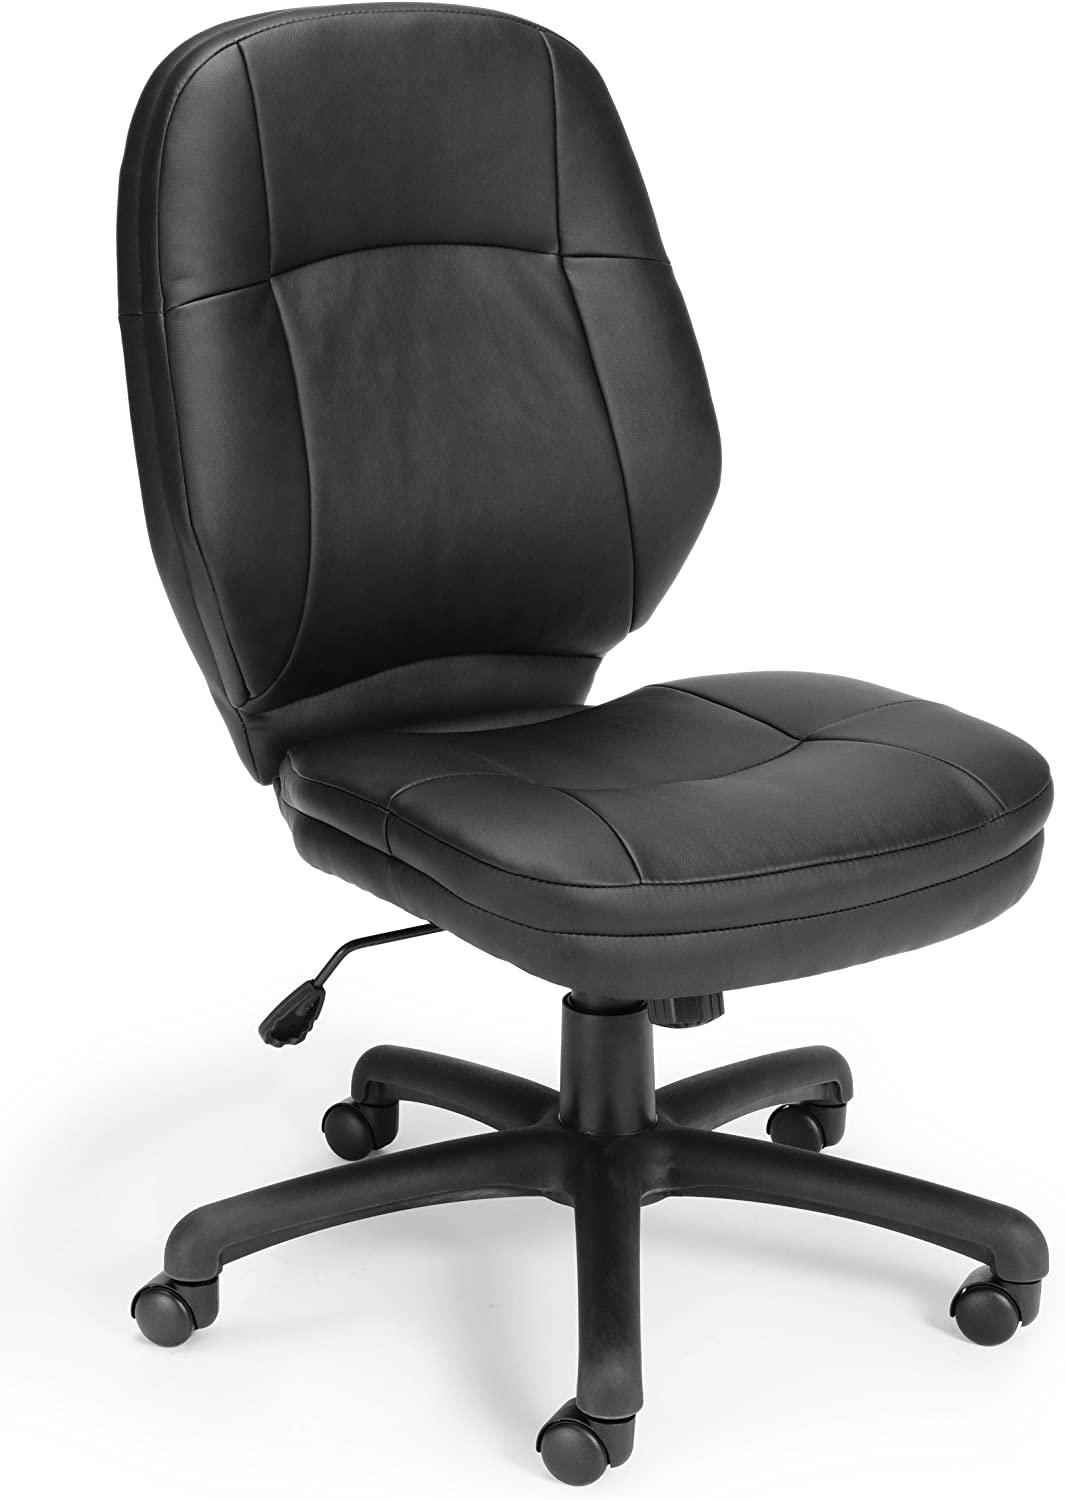 OFM Stimulus Series Leatherette Executive Mid-Back Armless Chair, in Black